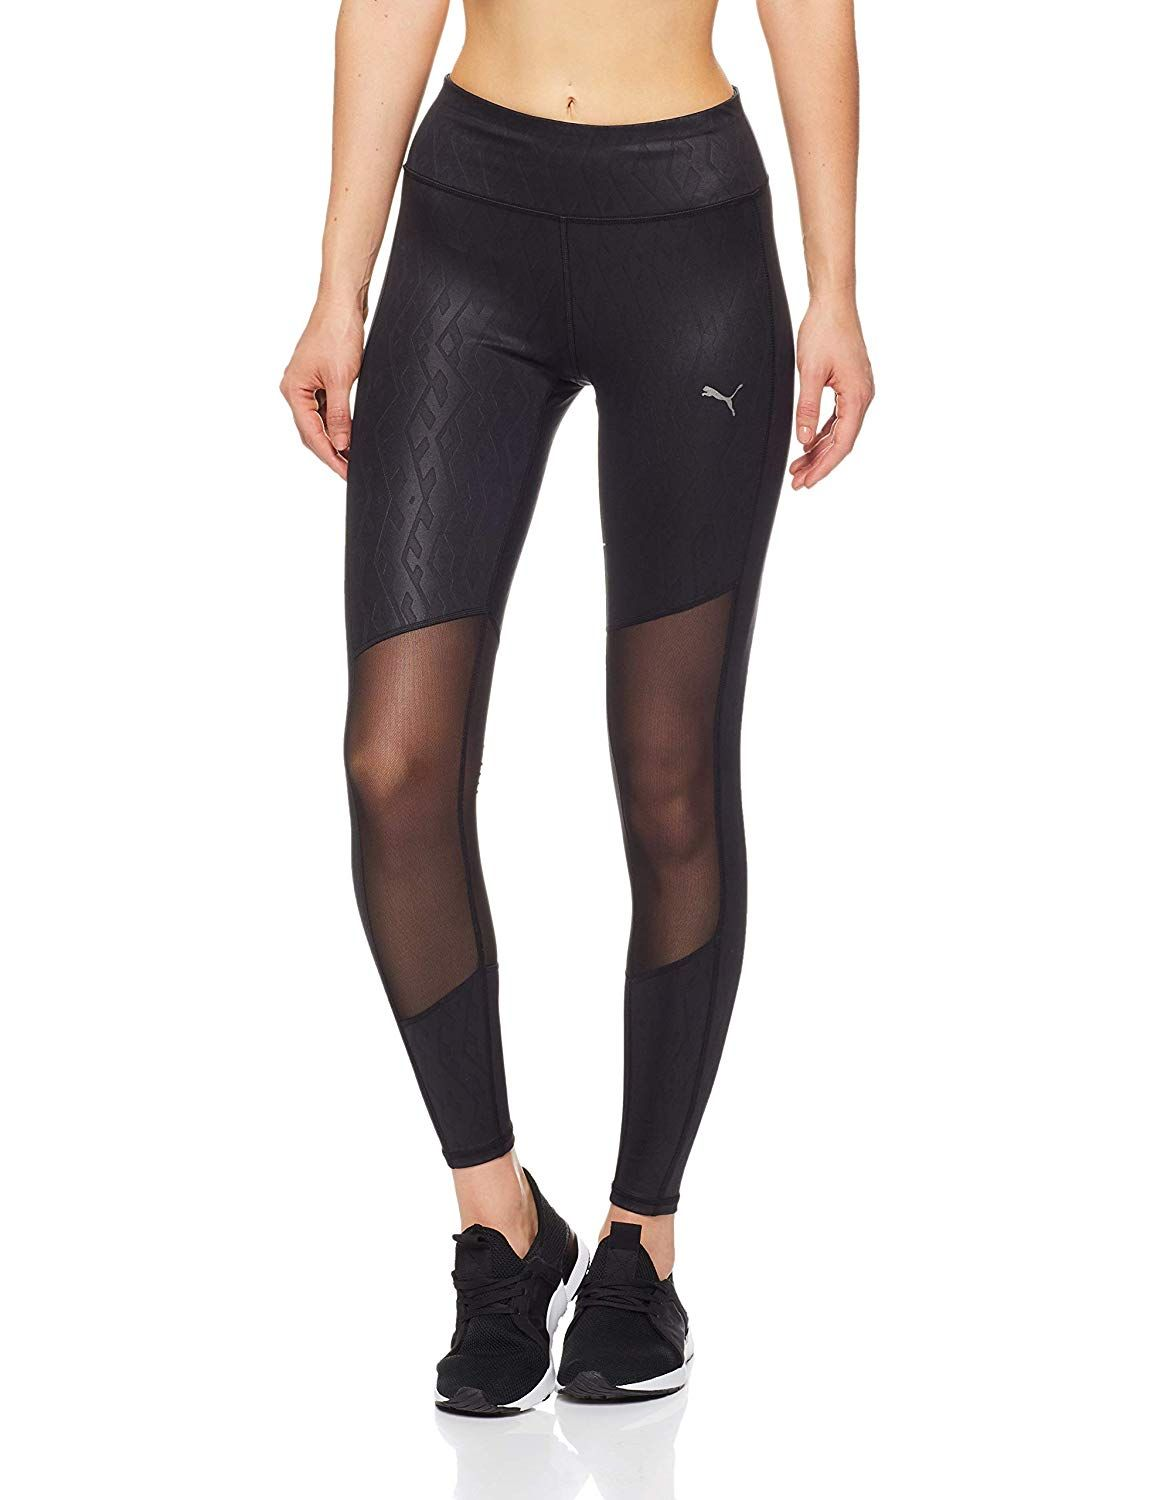 d962de62a8836 Puma Women's Always on Graphic 7/8 Tight Pants: Amazon.co.uk: Sports ...